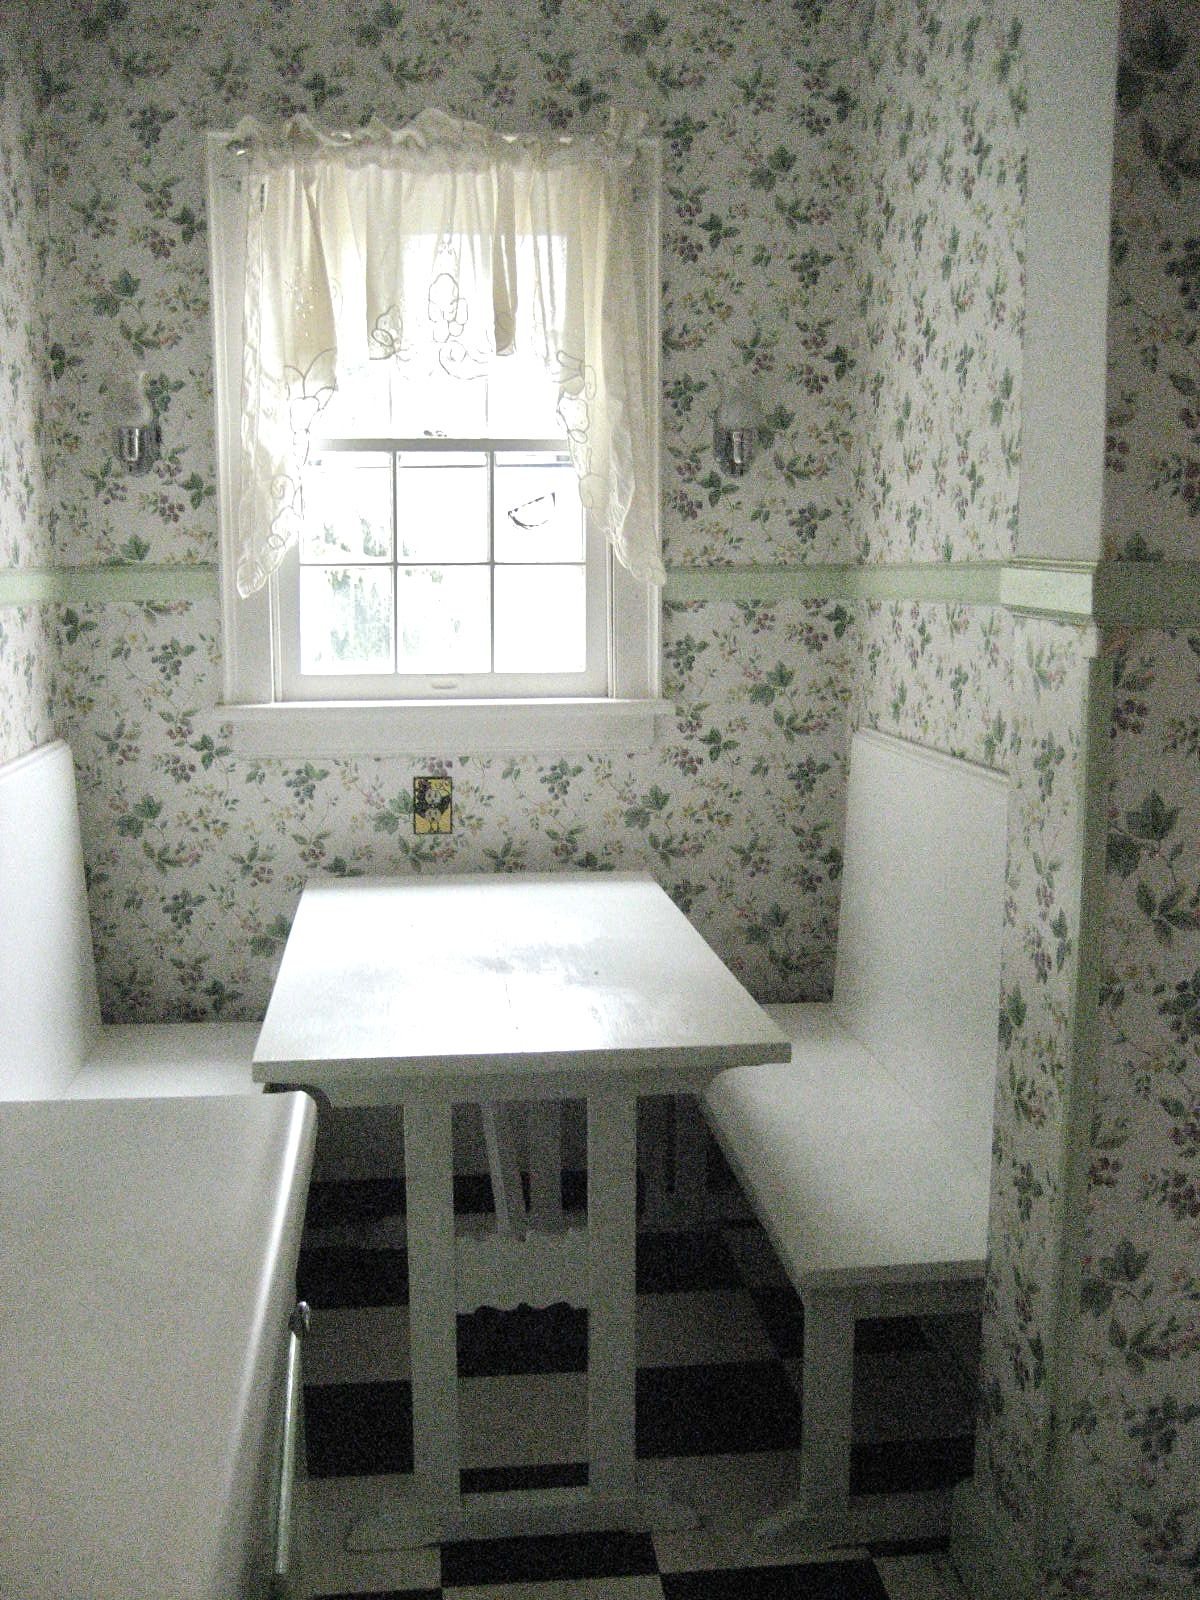 Jeni Sandberg - Barking Sands Vintage: The Breakfast Nook